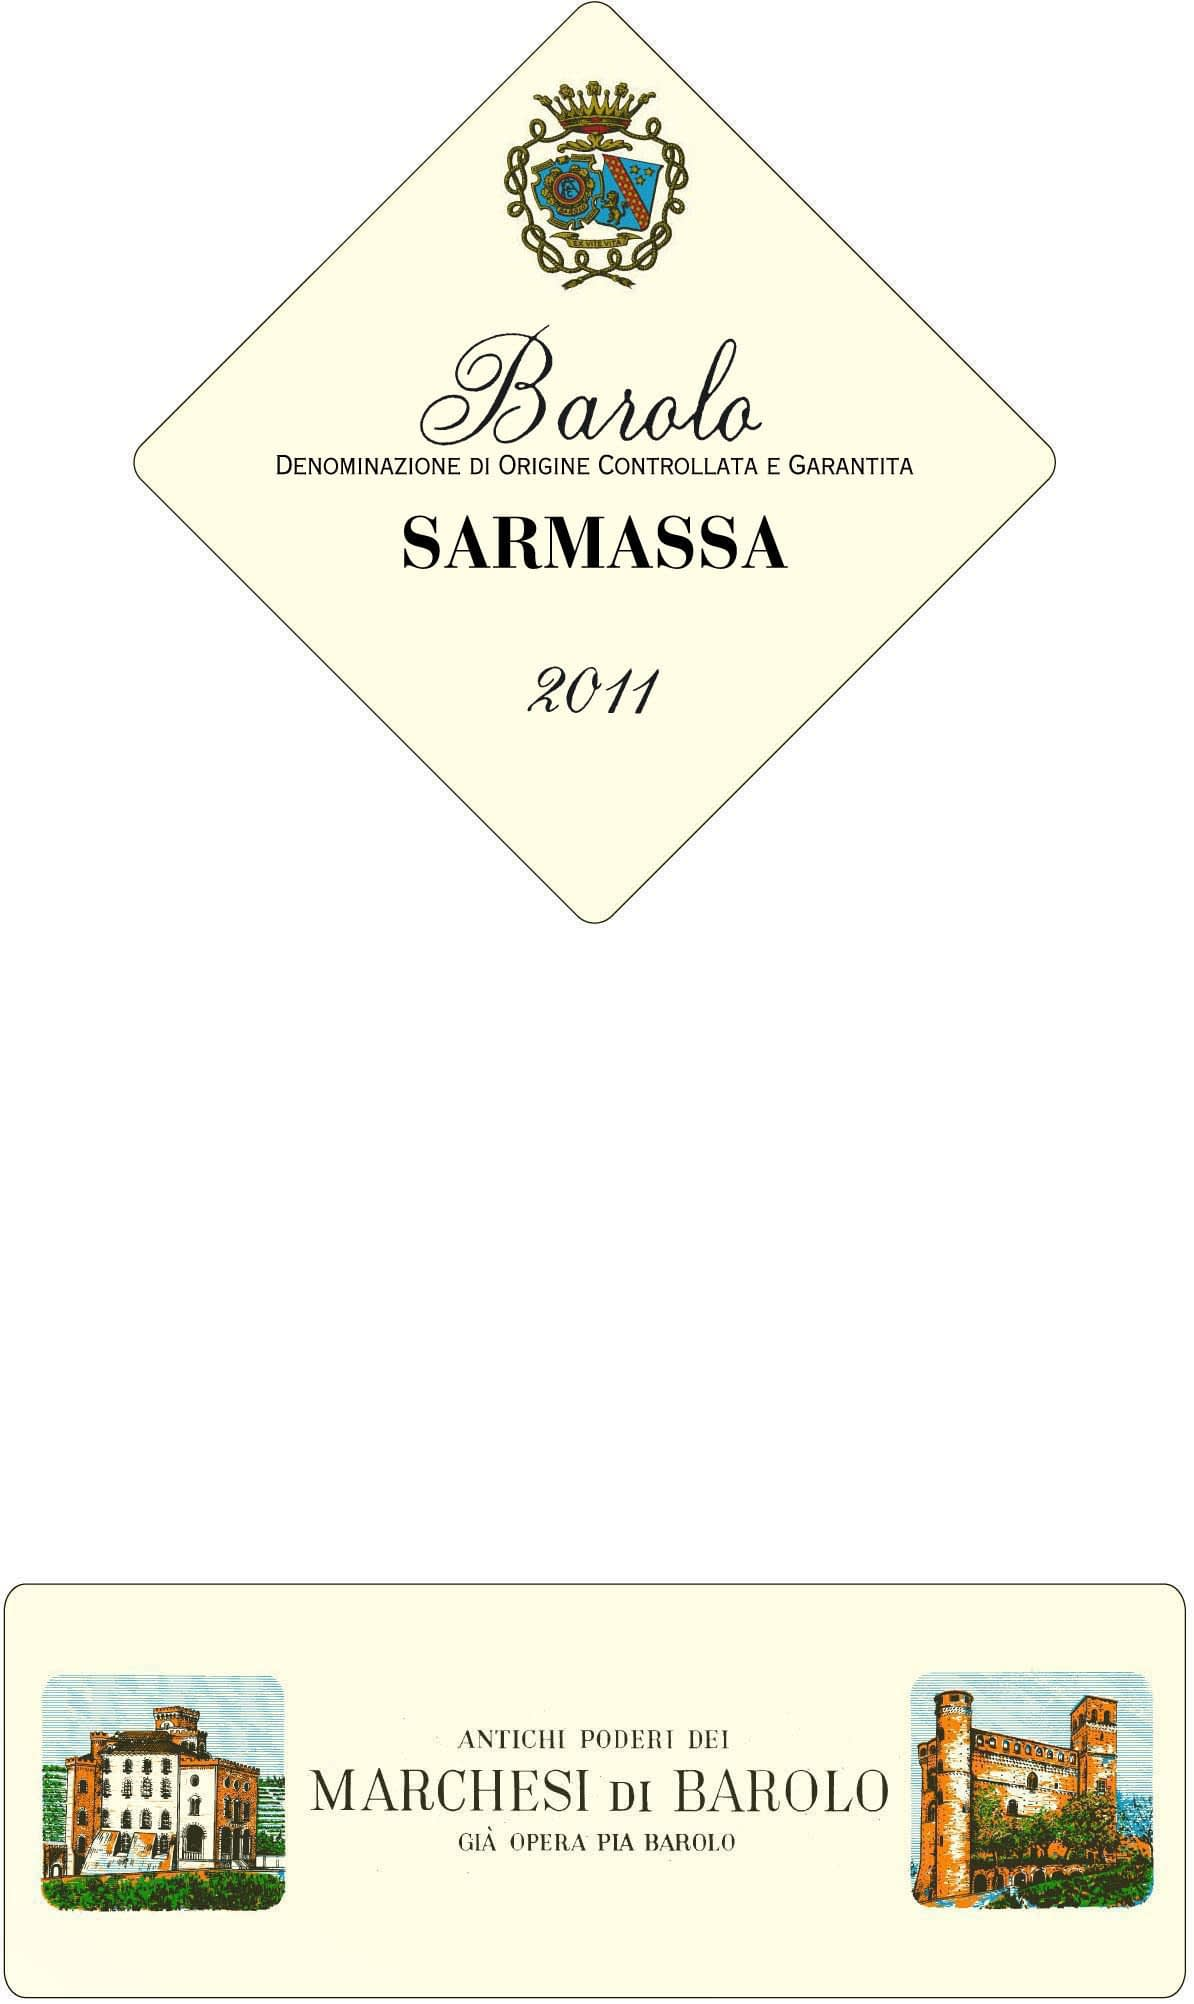 Marchesi di Barolo Sarmassa 2011 - only 4 bottles left!